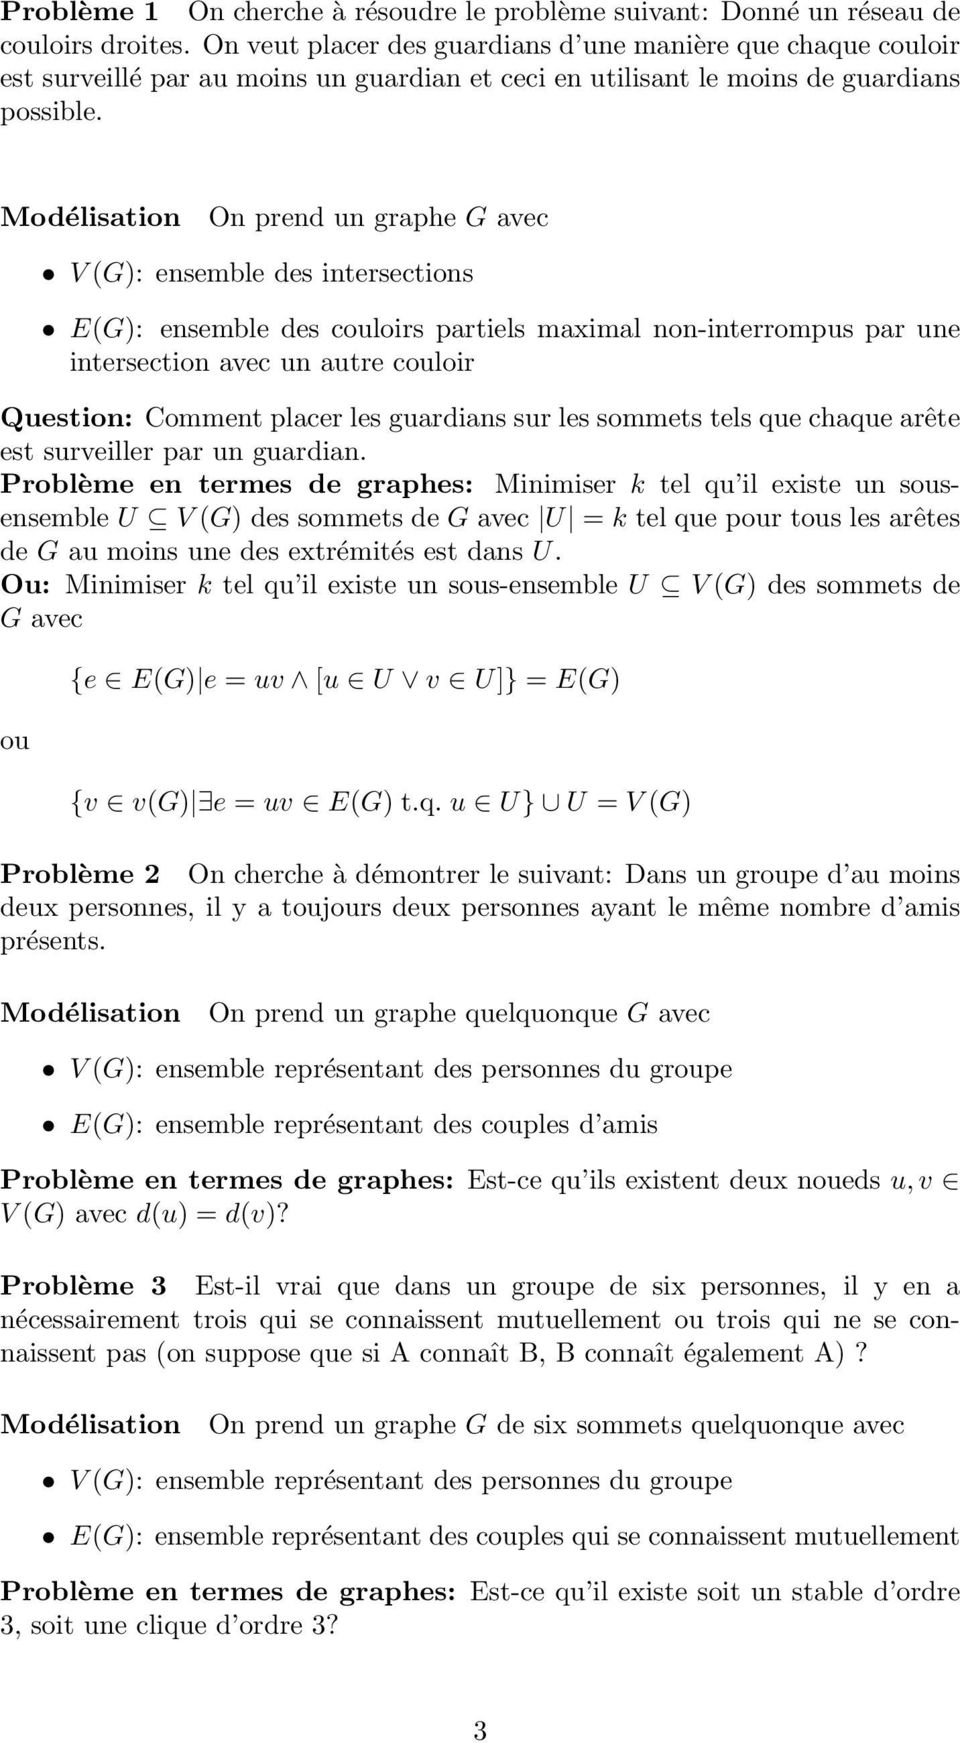 V (G): ensemble des intersections E(G): ensemble des couloirs partiels maximal non-interrompus par une intersection avec un autre couloir Question: Comment placer les guardians sur les sommets tels